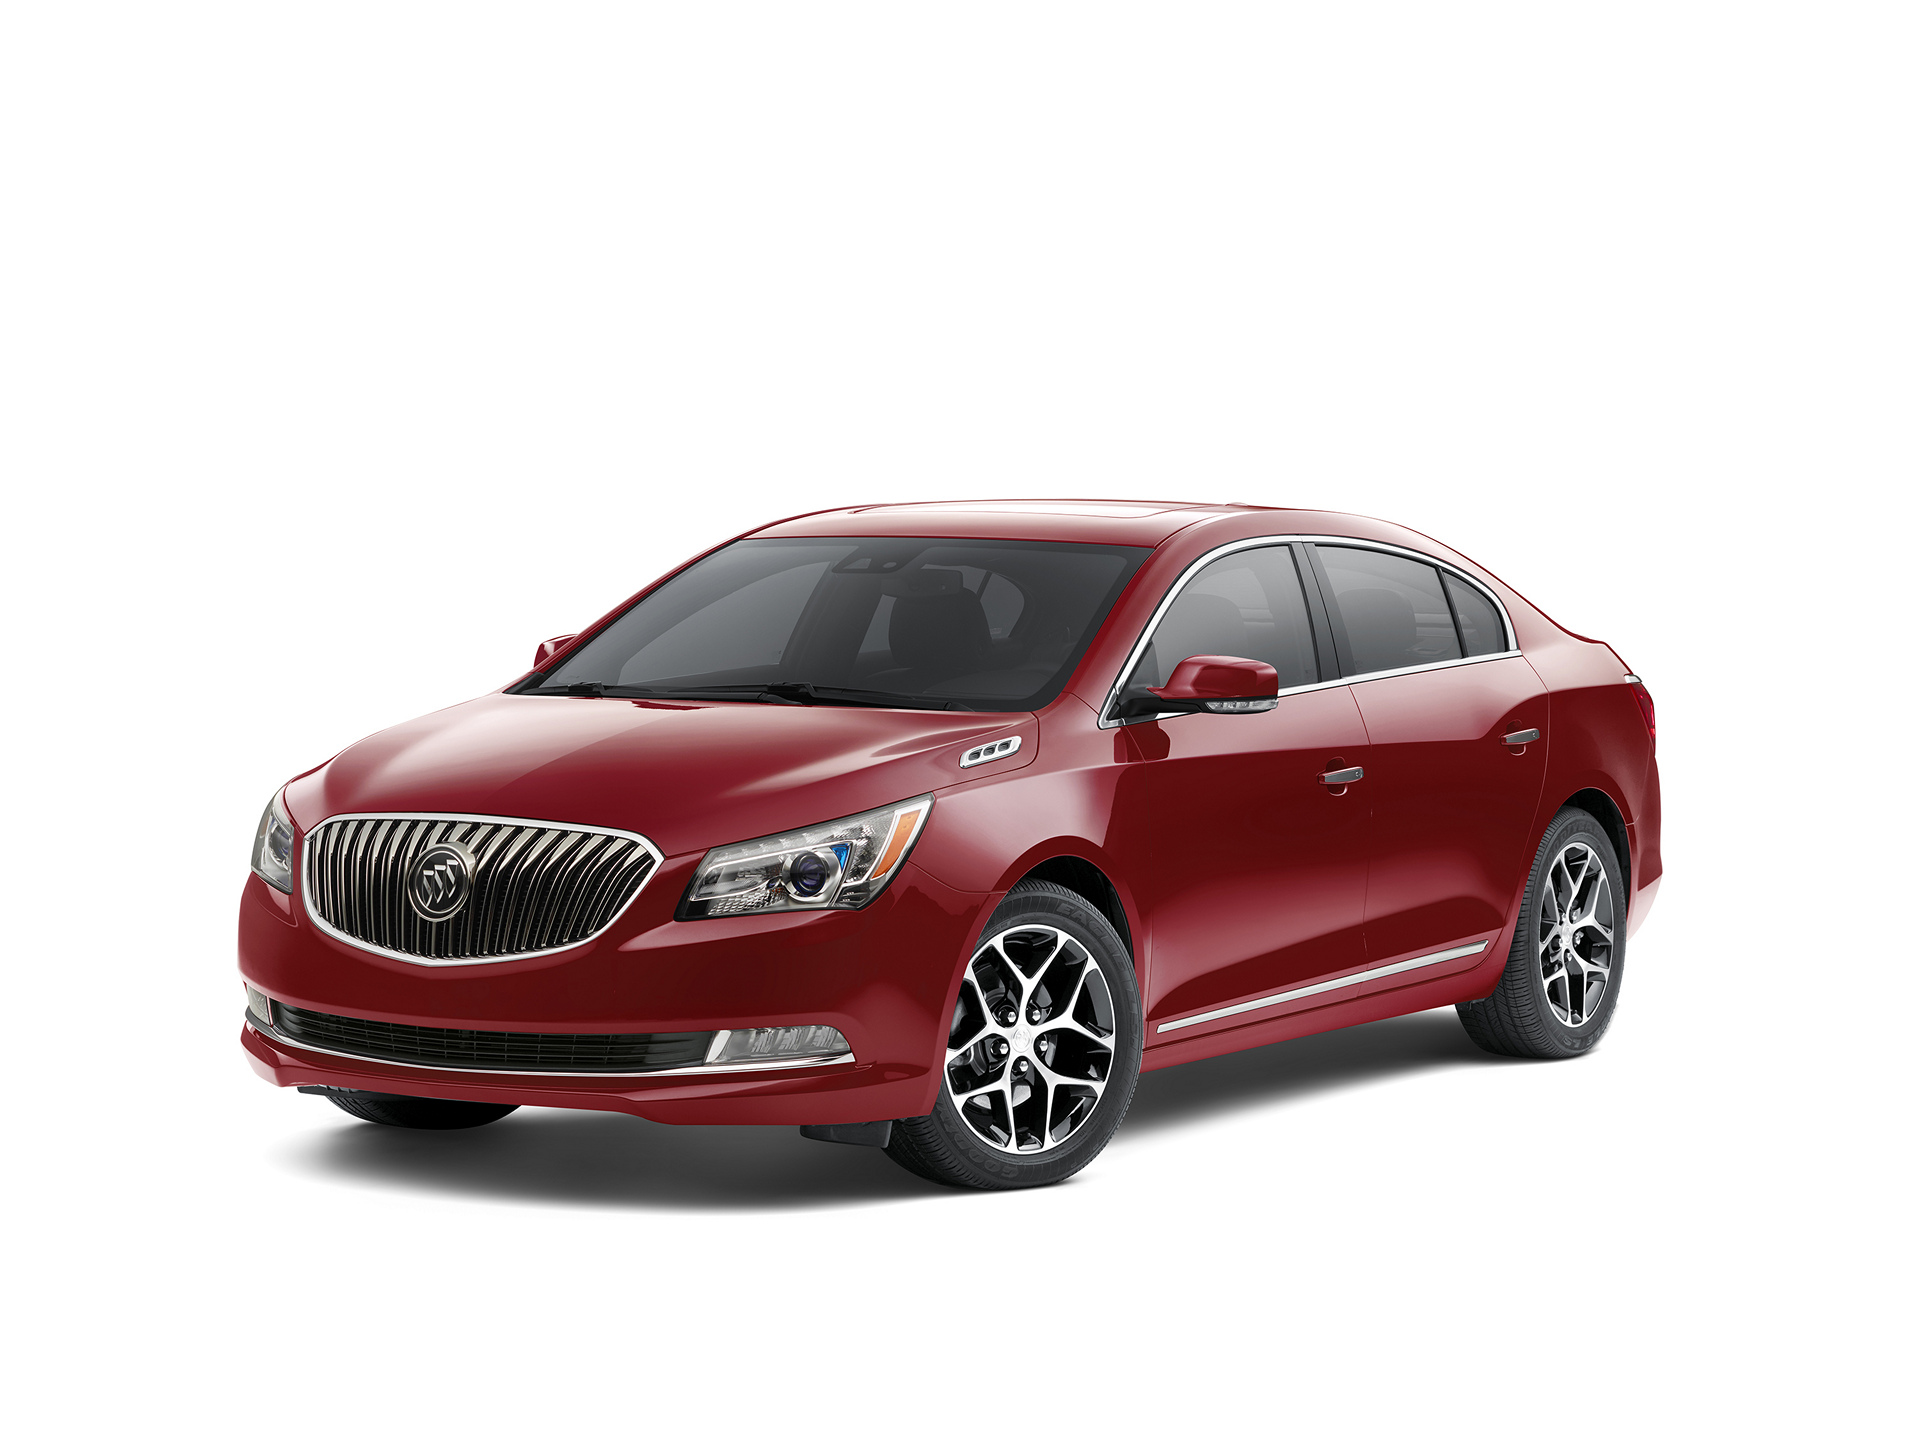 2016 buick lacrosse review carrrs auto portal. Black Bedroom Furniture Sets. Home Design Ideas